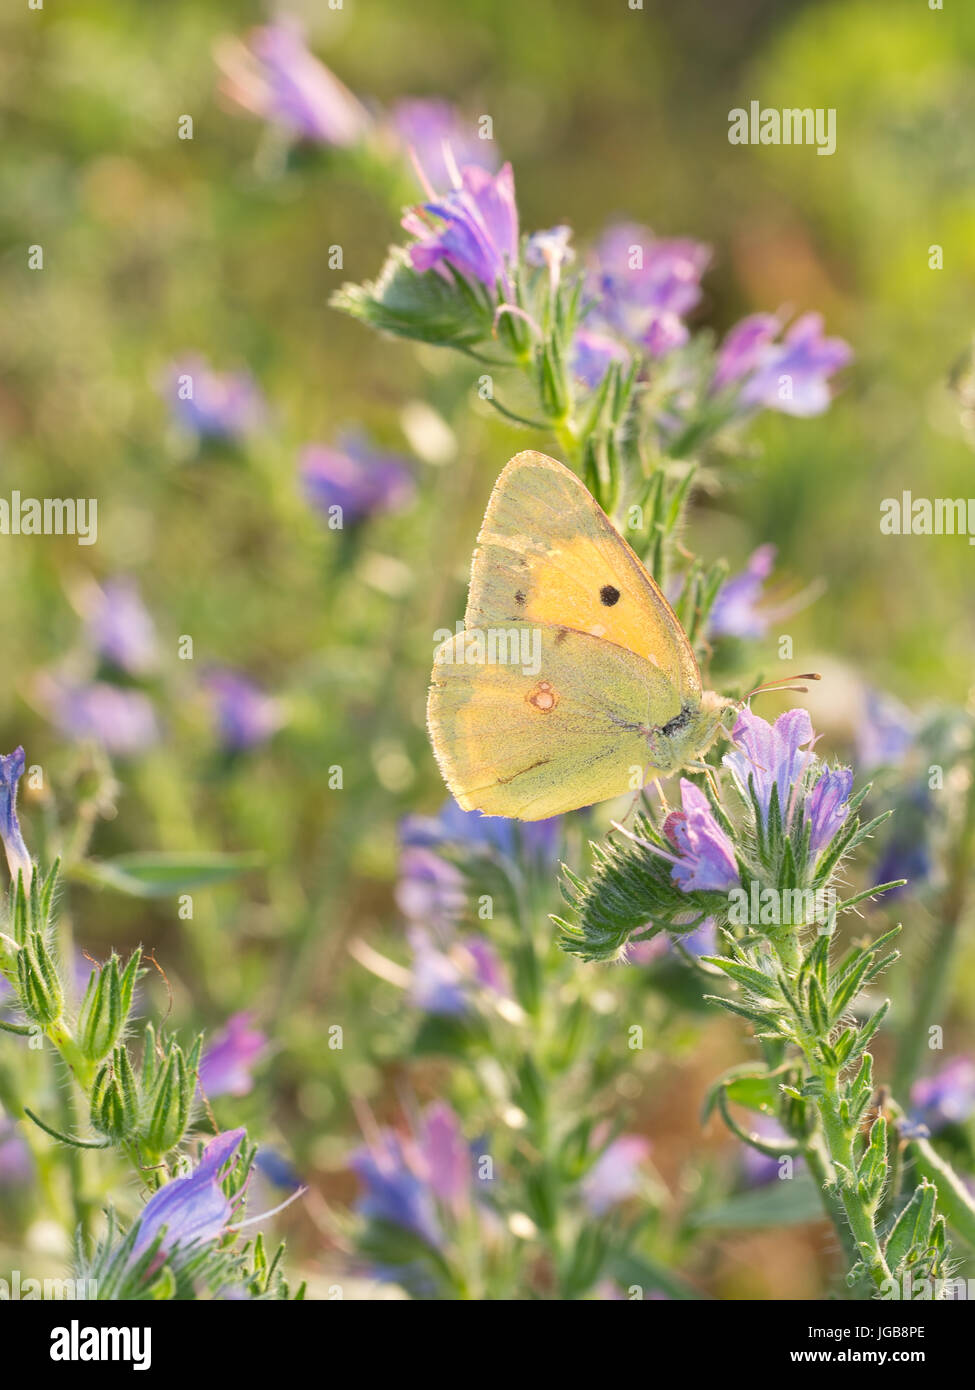 Clouded yellow butterfly on Echium vulgare - Viper's bugloss flower. - Stock Image